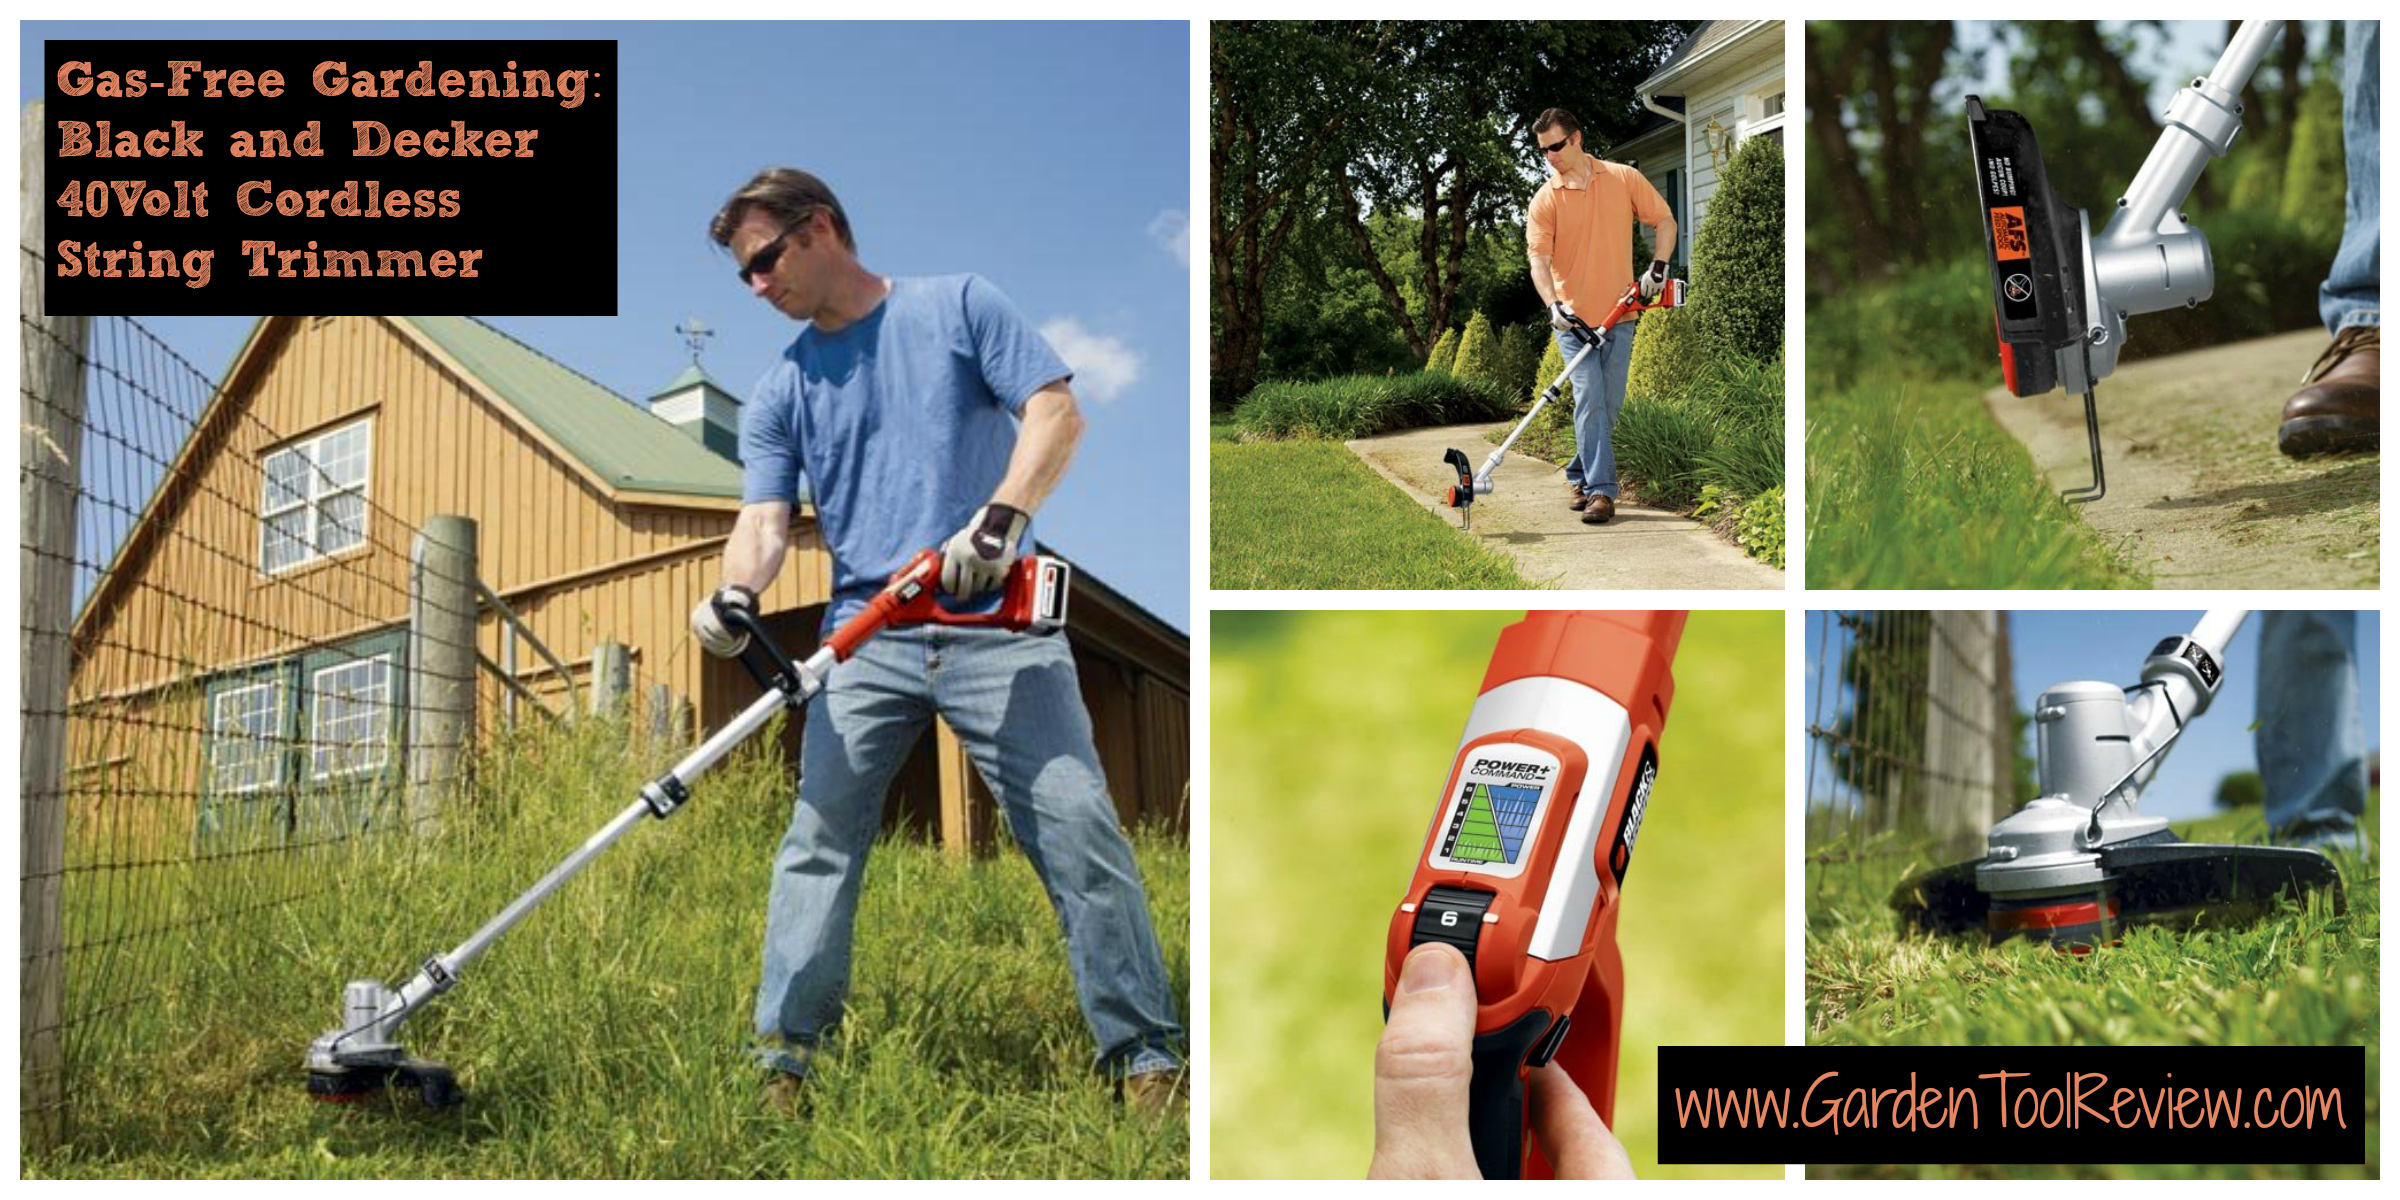 Review of Black and Decker's 40Volt String Trimmer